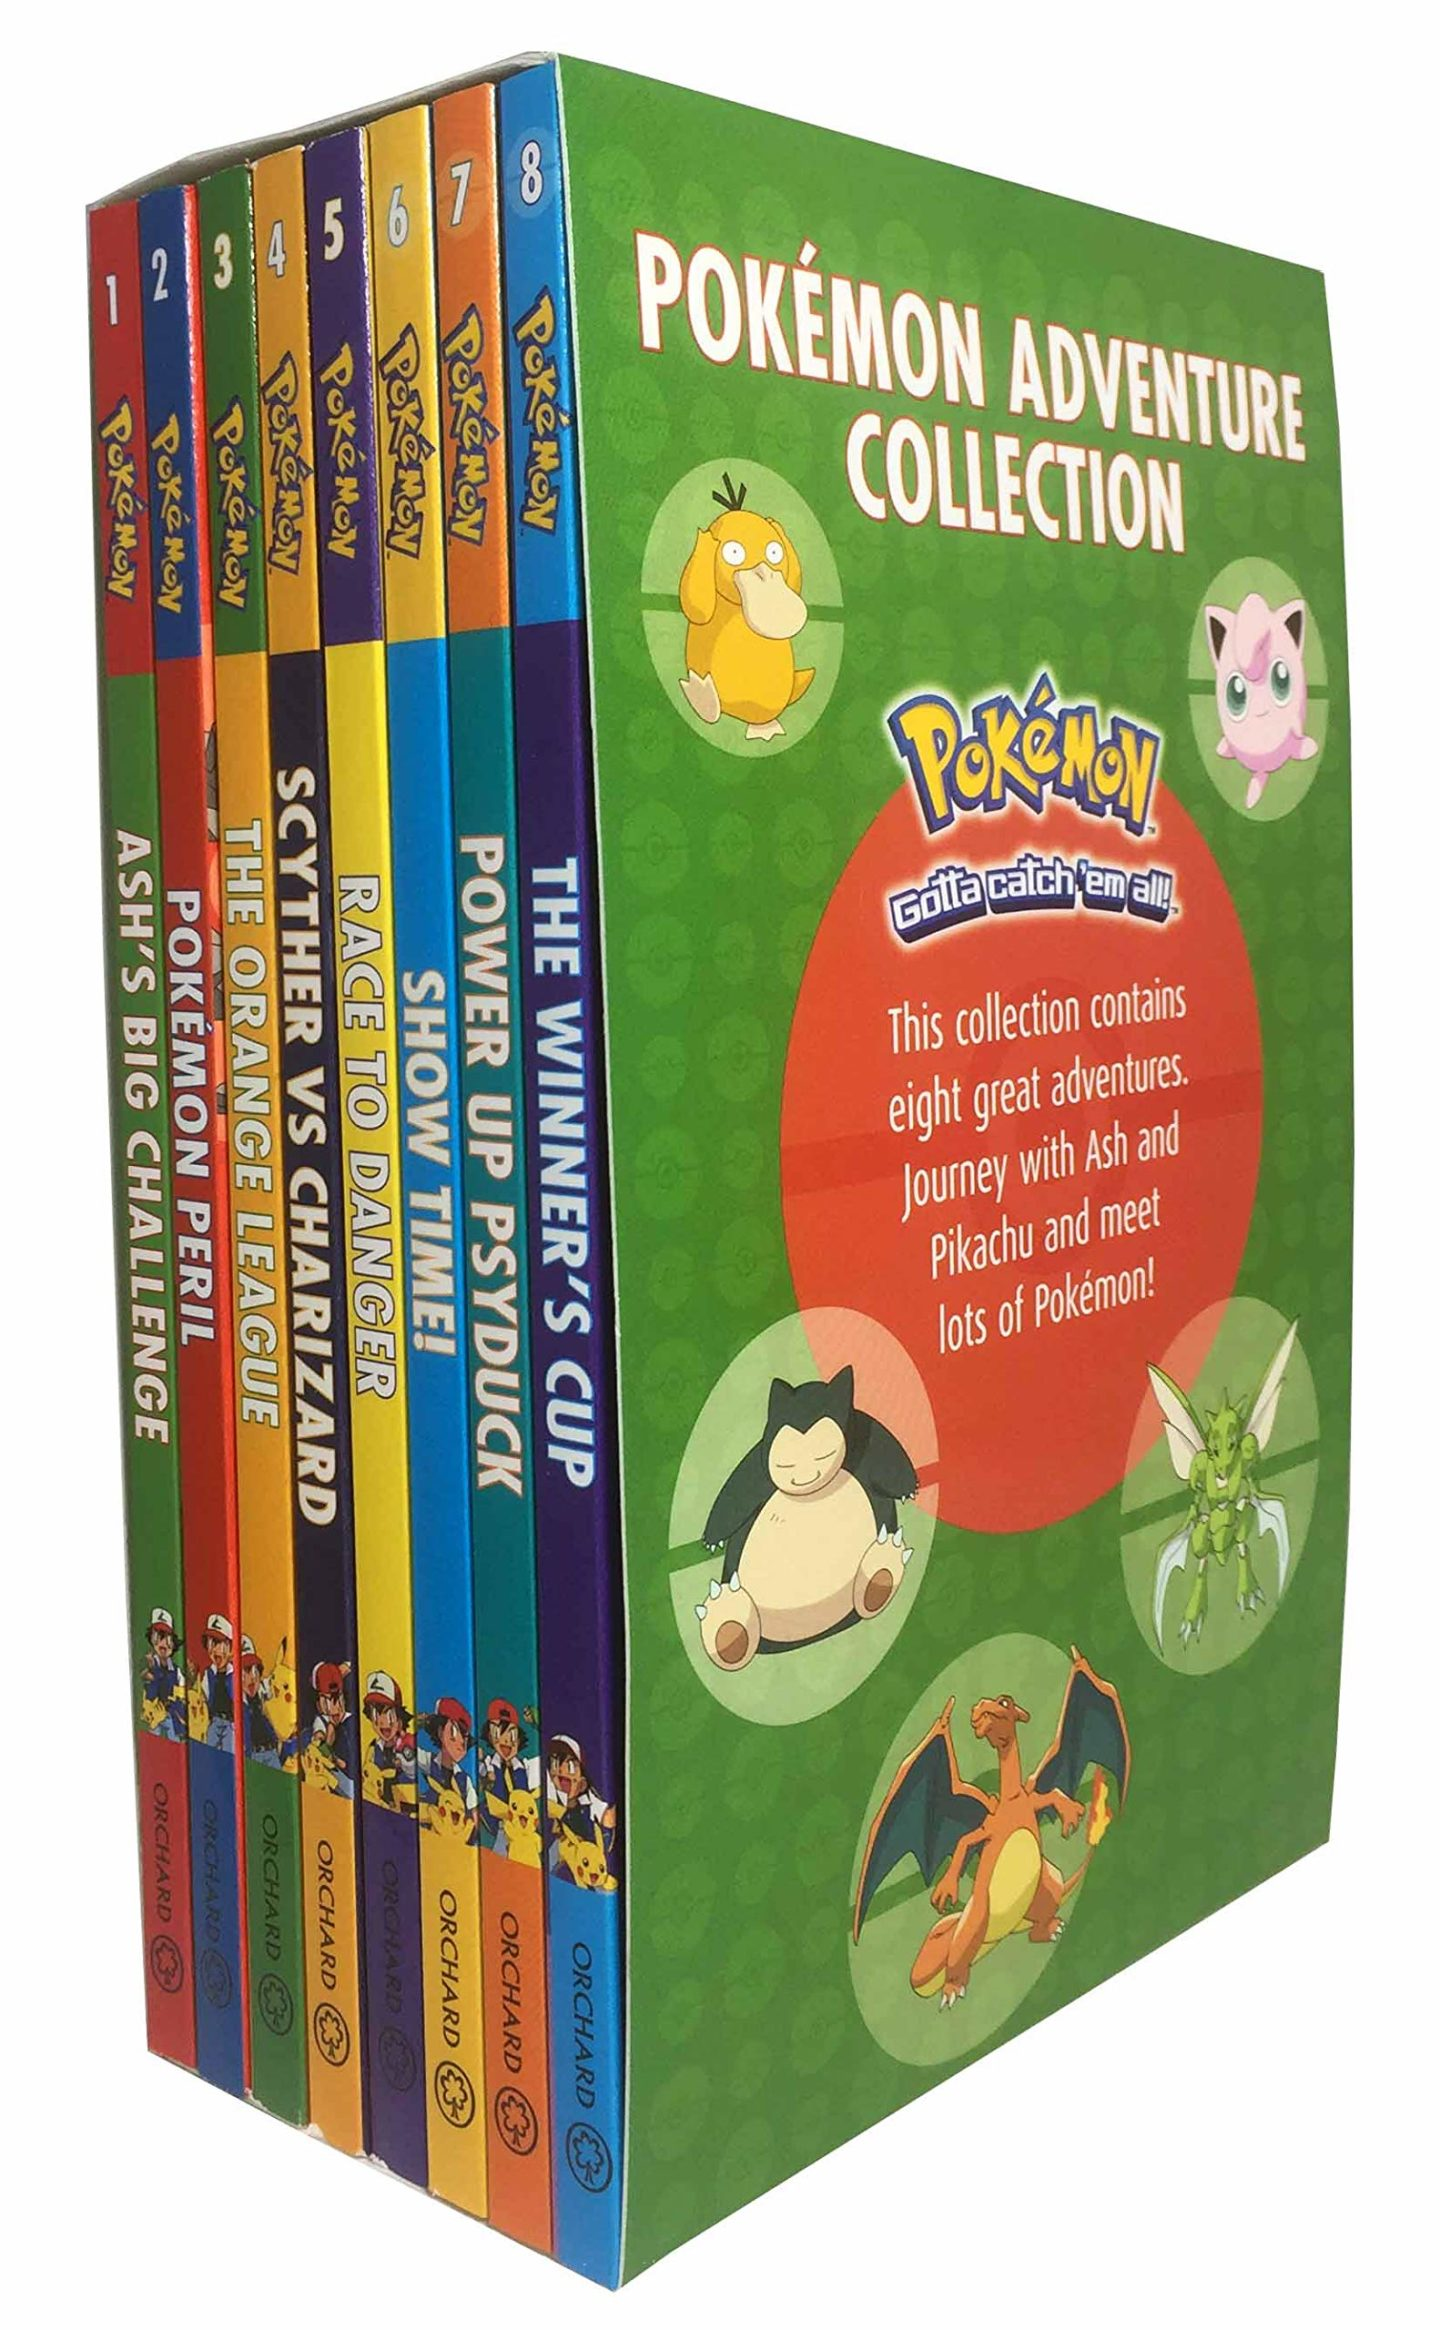 10 Pokemon gifts for kids you can buy on Amazon. Pokemon adventure book collection.